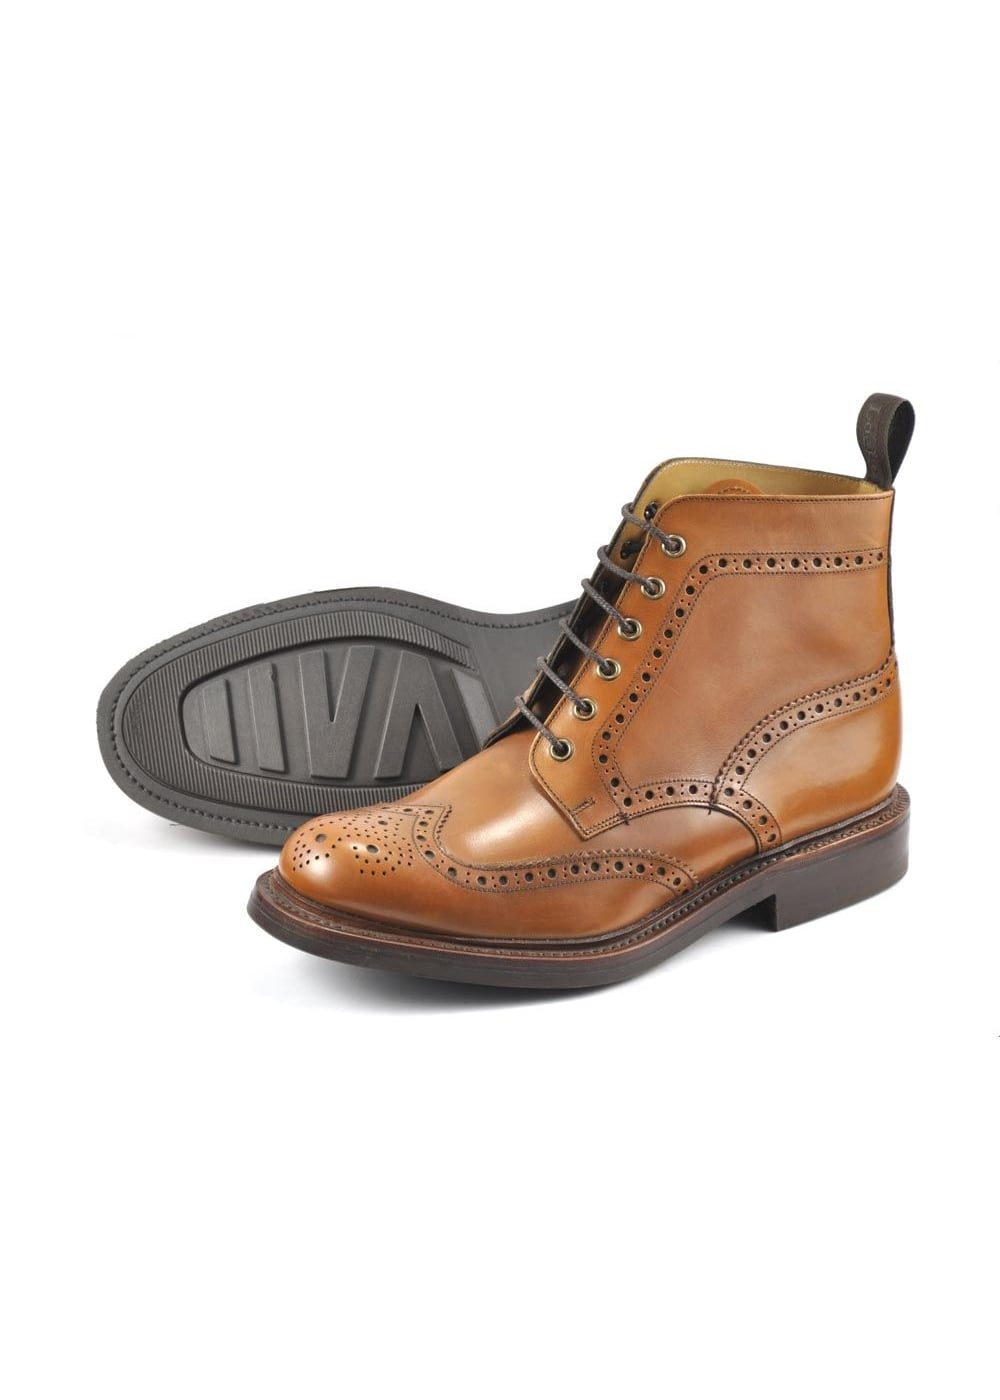 Loake Bedale Boots Large Image